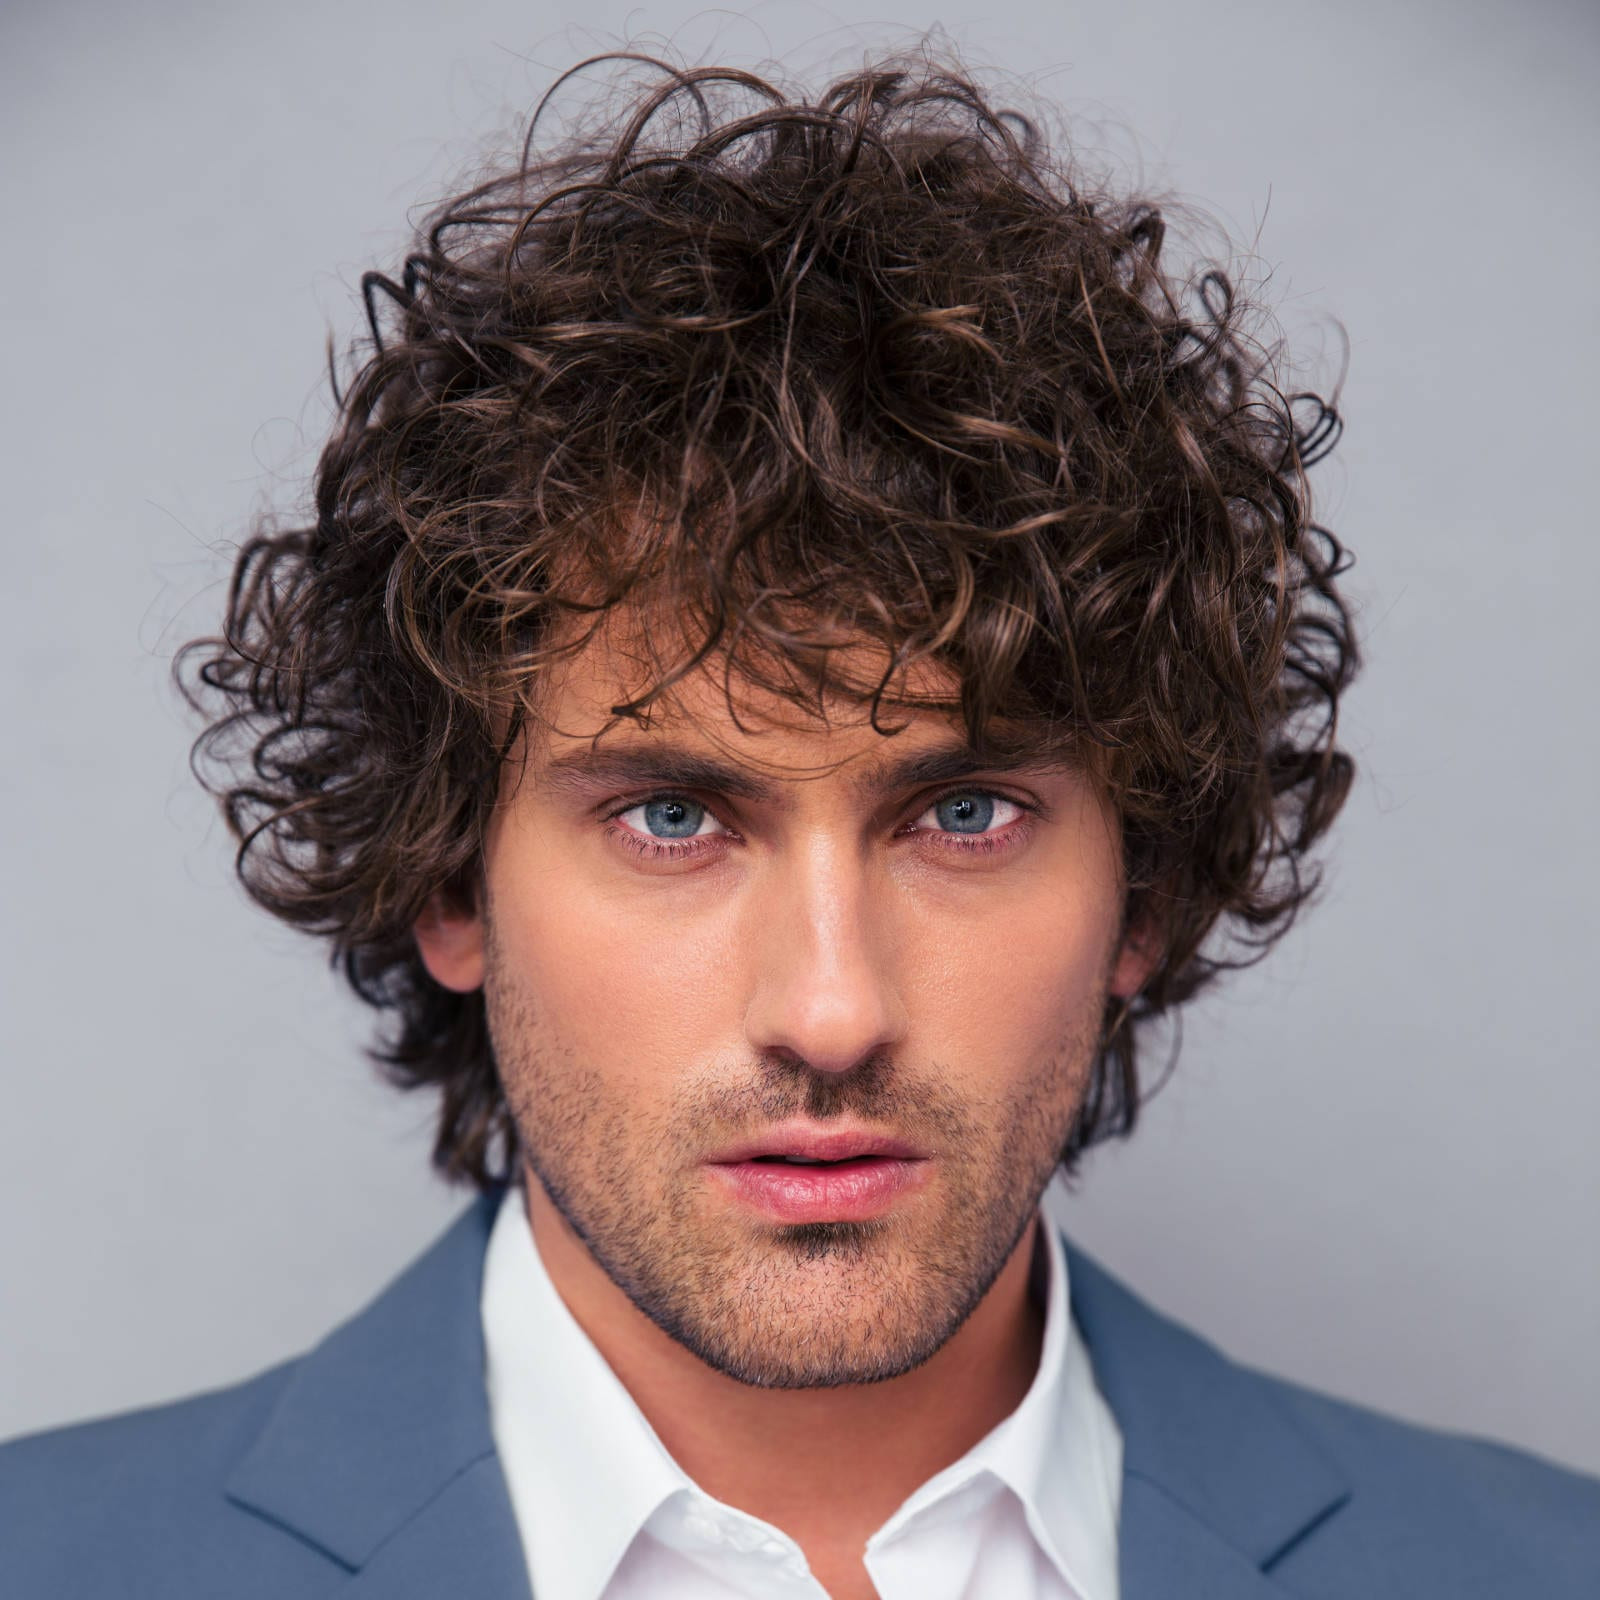 Best ideas about Mens Hairstyle Curly . Save or Pin 40 Modern Men s Hairstyles for Curly Hair That Will Now.